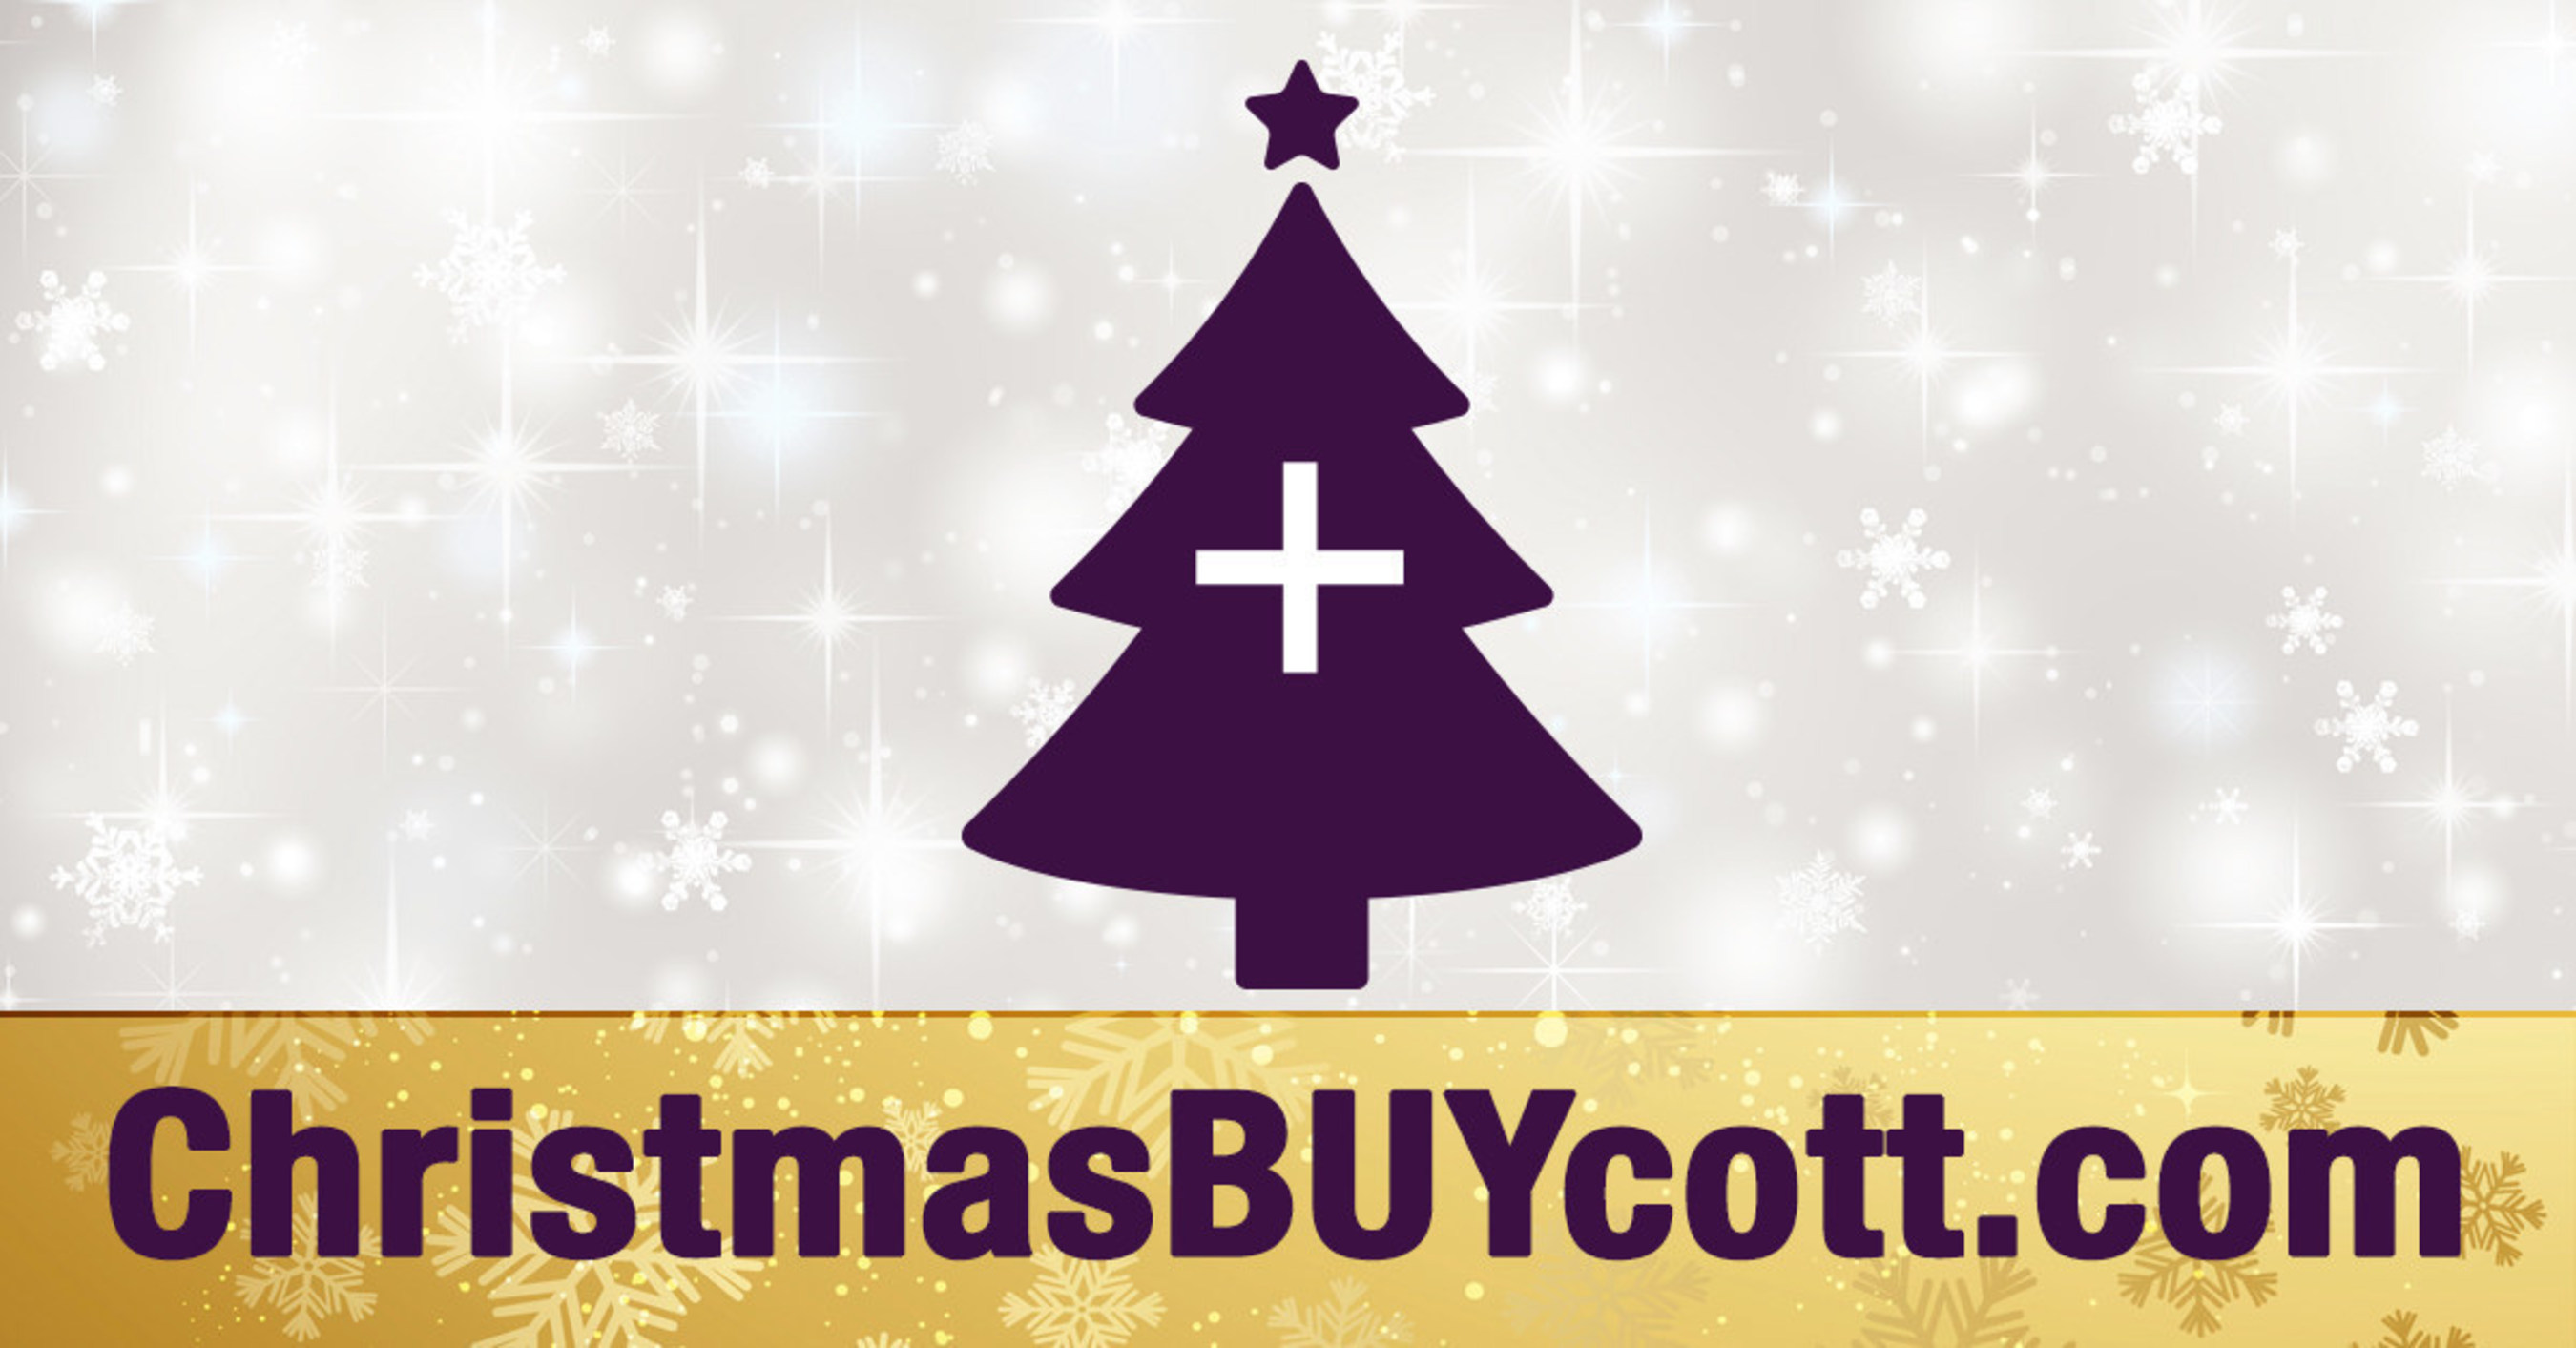 ChristmasBUYcott.com Campaign Channels $30 Billion in Consumer ...